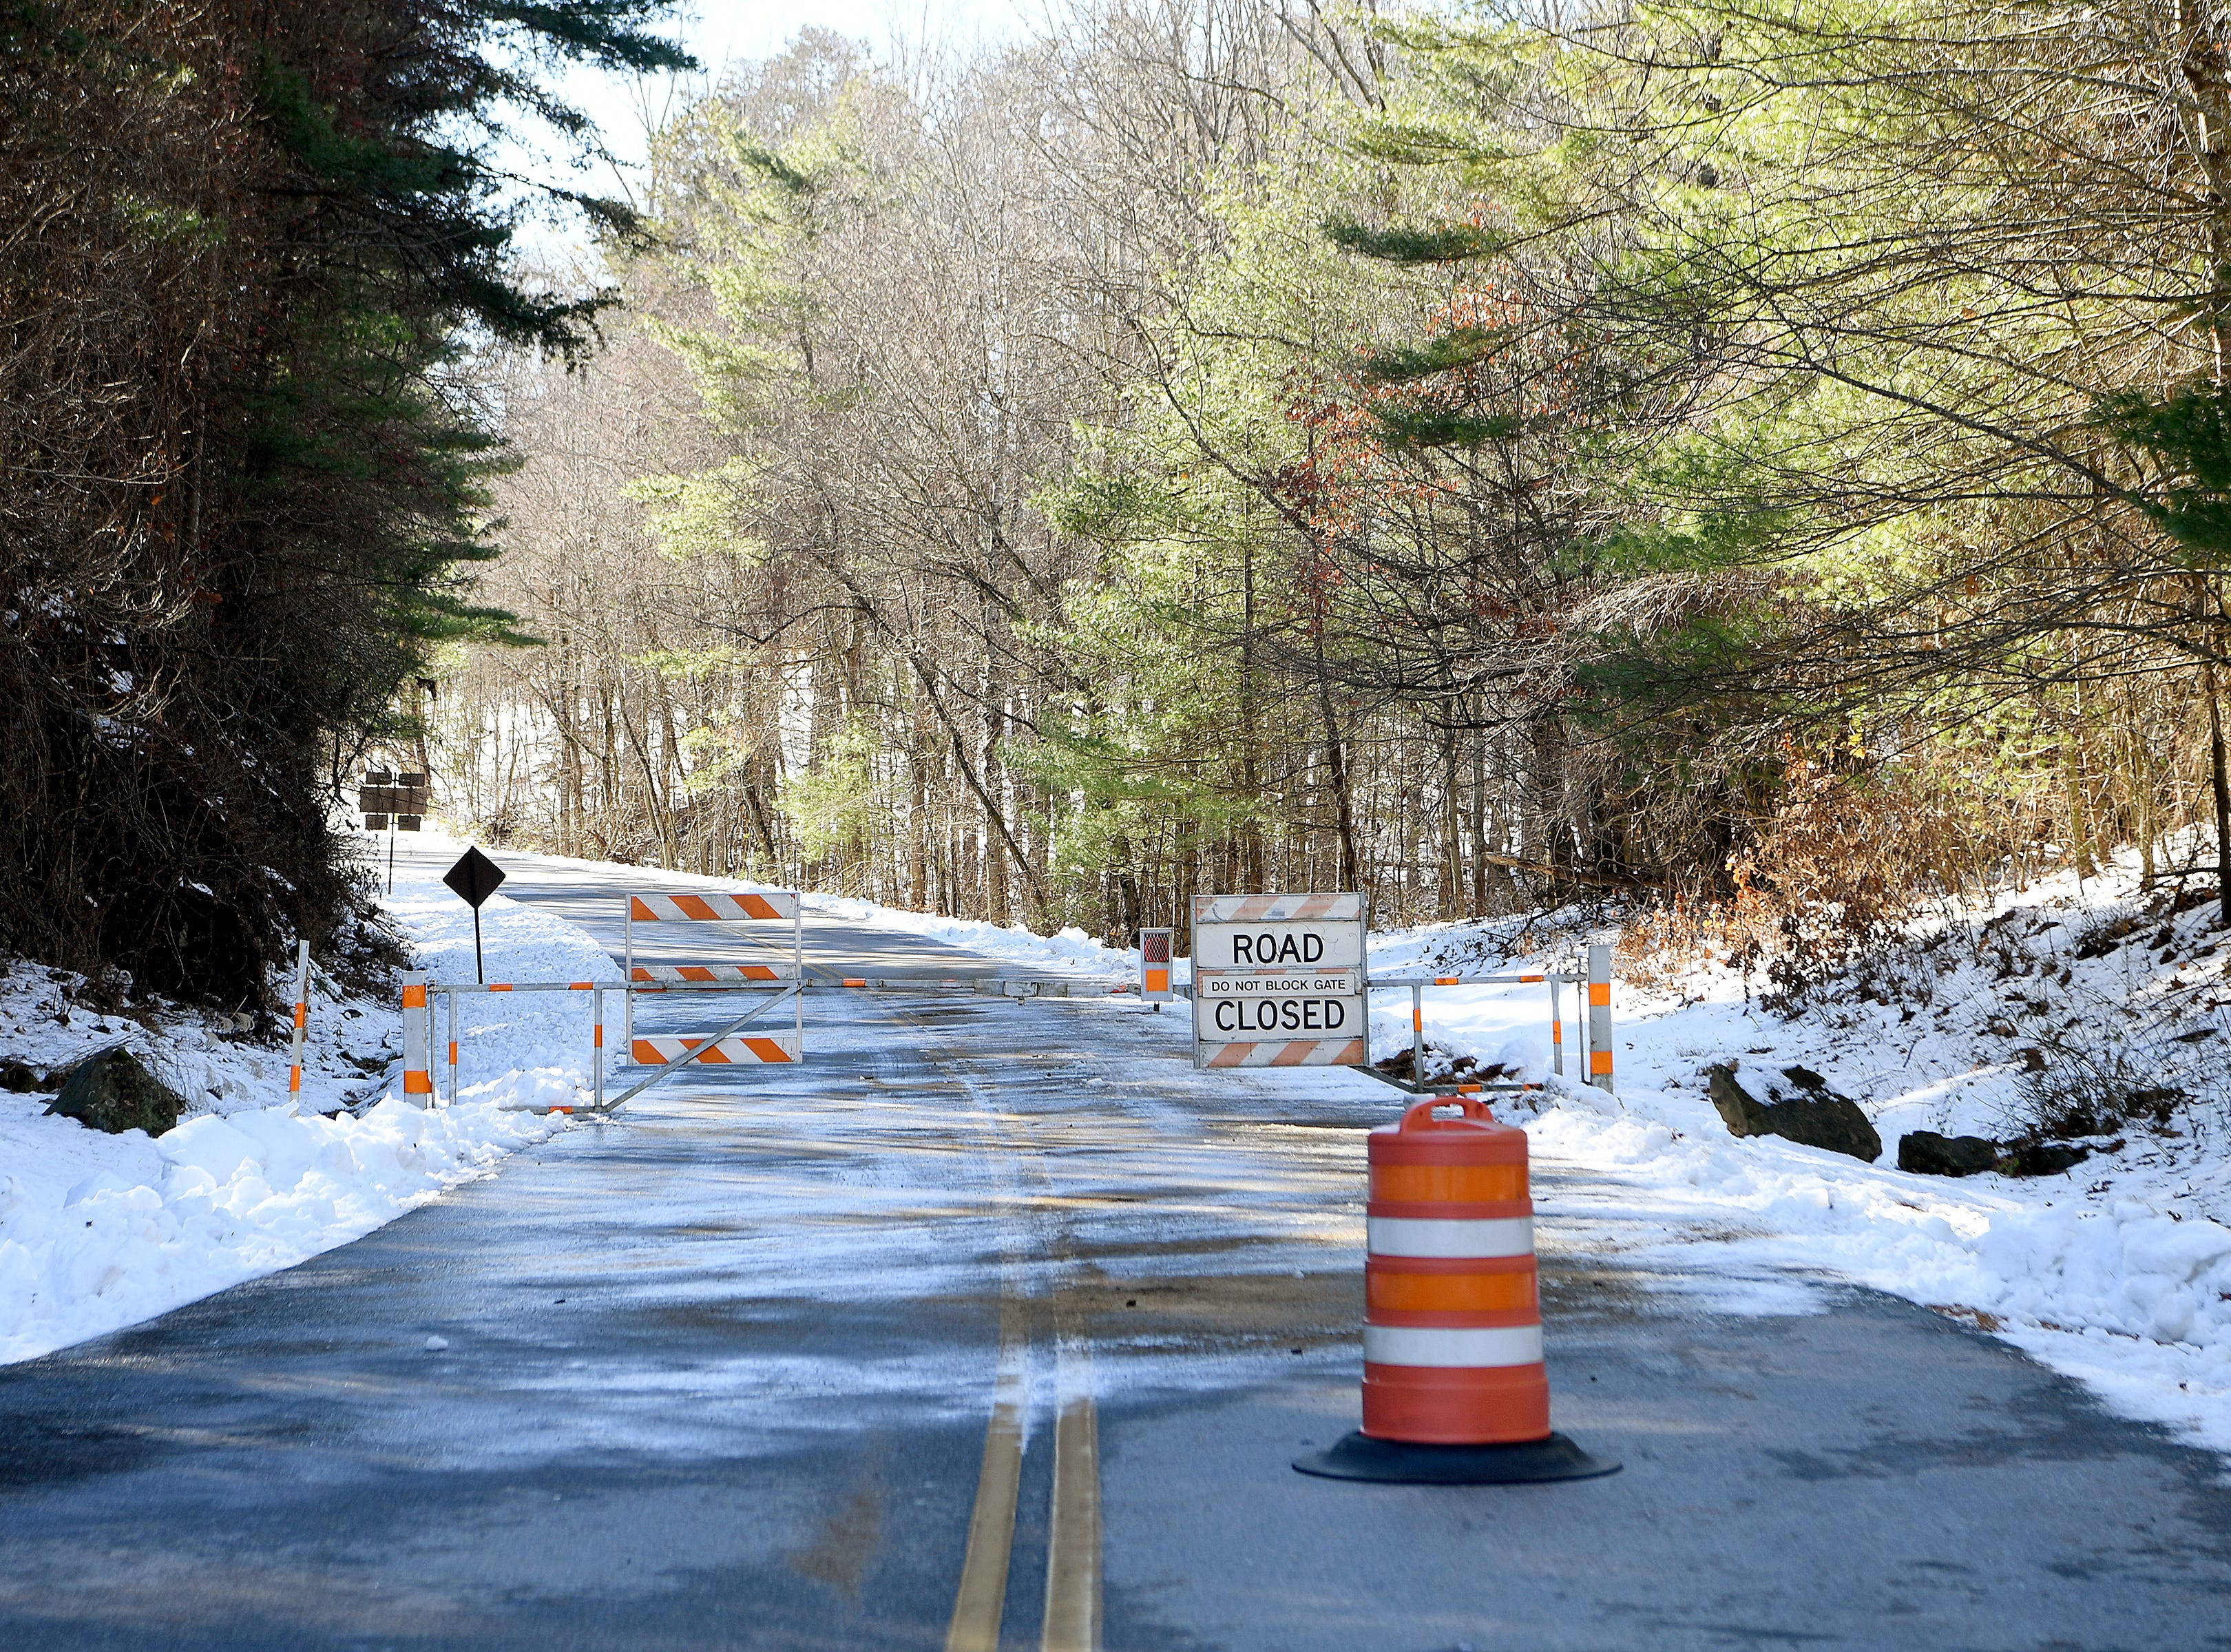 Most of the Blue Ridge Parkway was still closed on Dec. 11, 2018 after weekend snows closed the road to vehicle traffic.